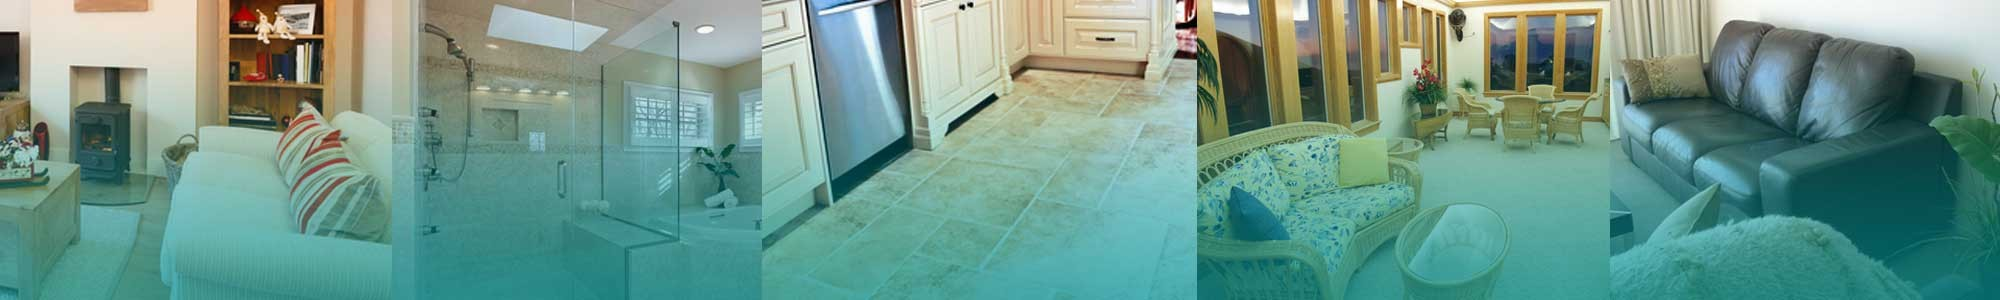 How To Remove Nail Polish Off Porcelain Tiles Alpine